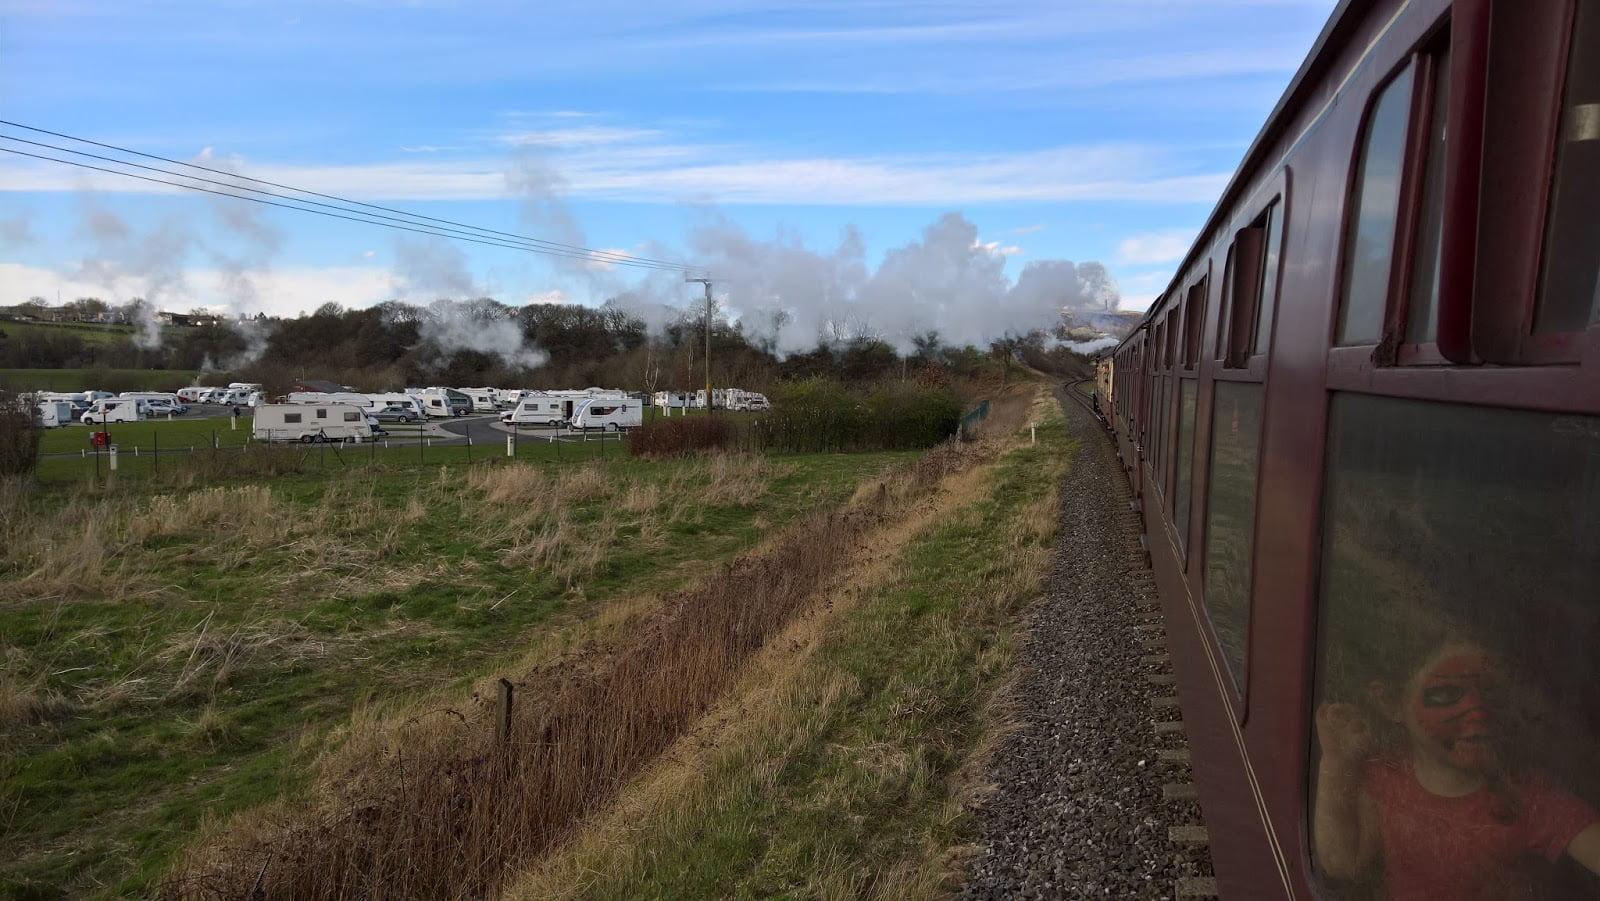 Burrs Country Park on the East Lancs Railway